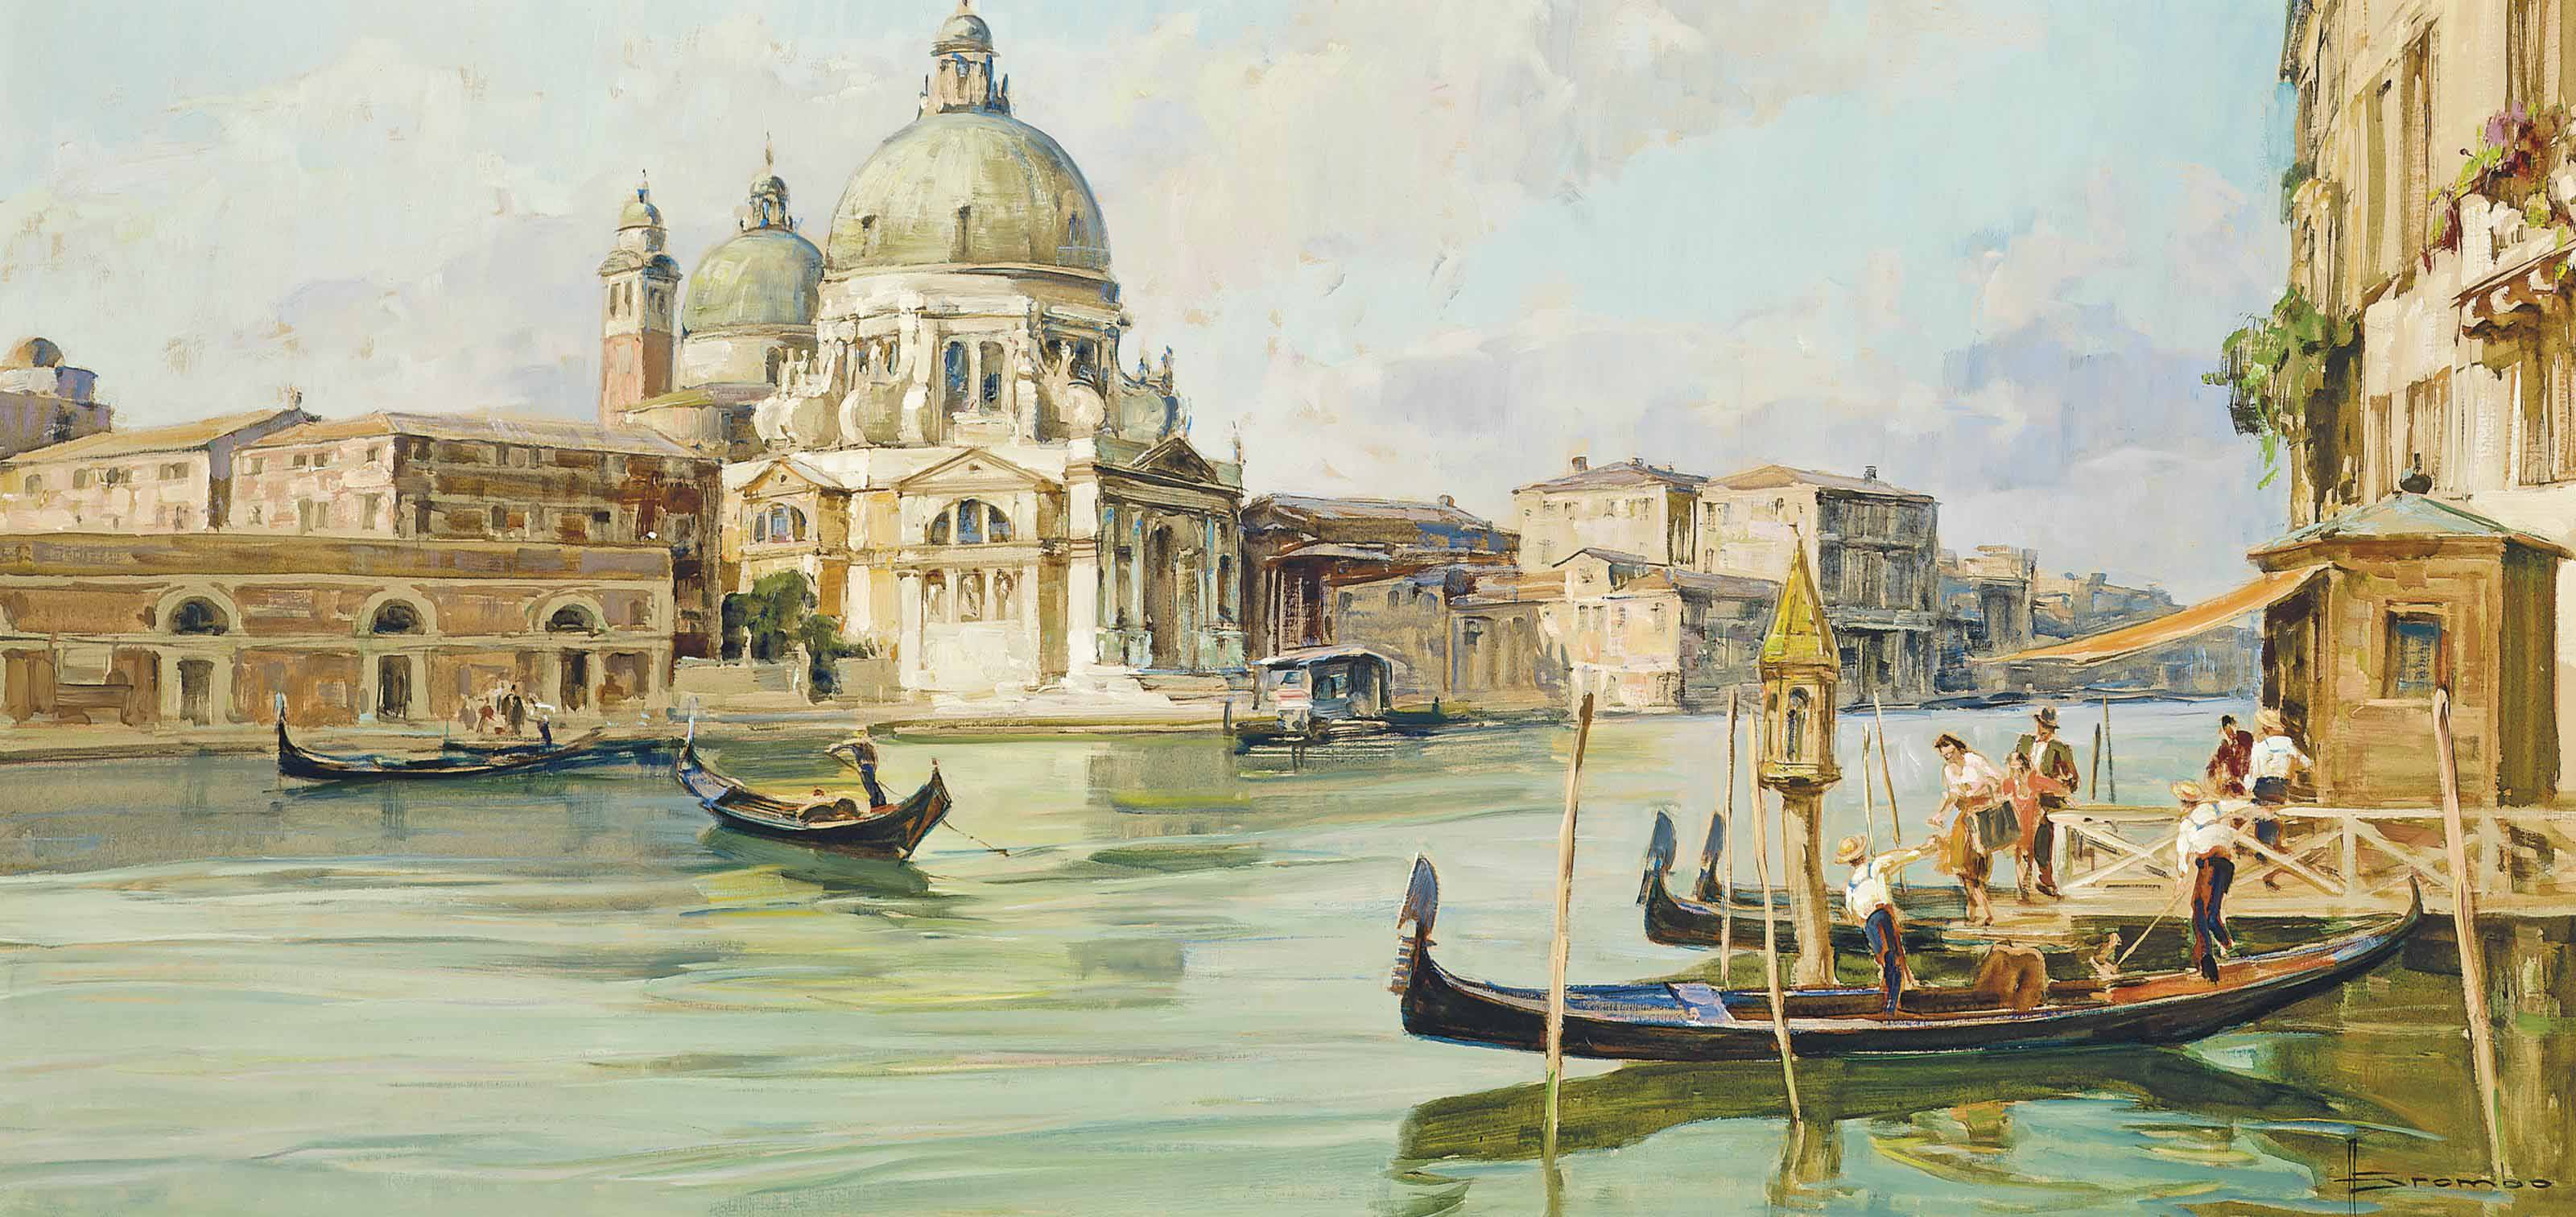 Boarding a gondola at the entrance to the Grand Canal, Santa Maria della Salute beyond